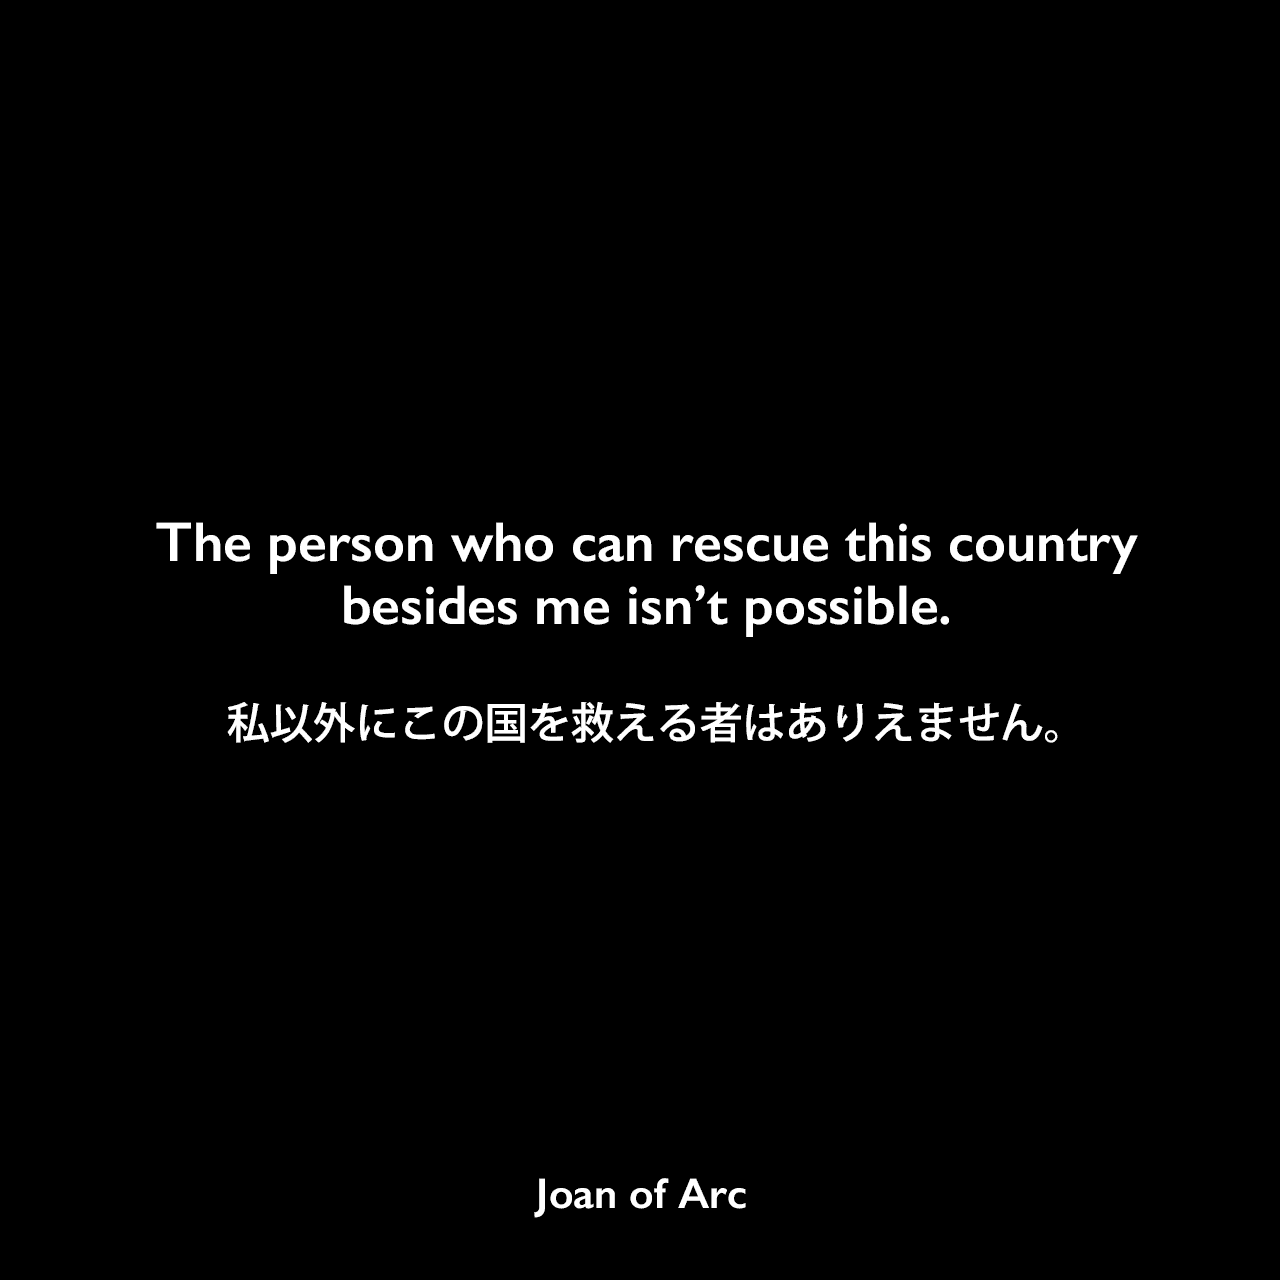 The person who can rescue this country besides me isn't possible.私以外にこの国を救える者はありえません。Joan of Arc